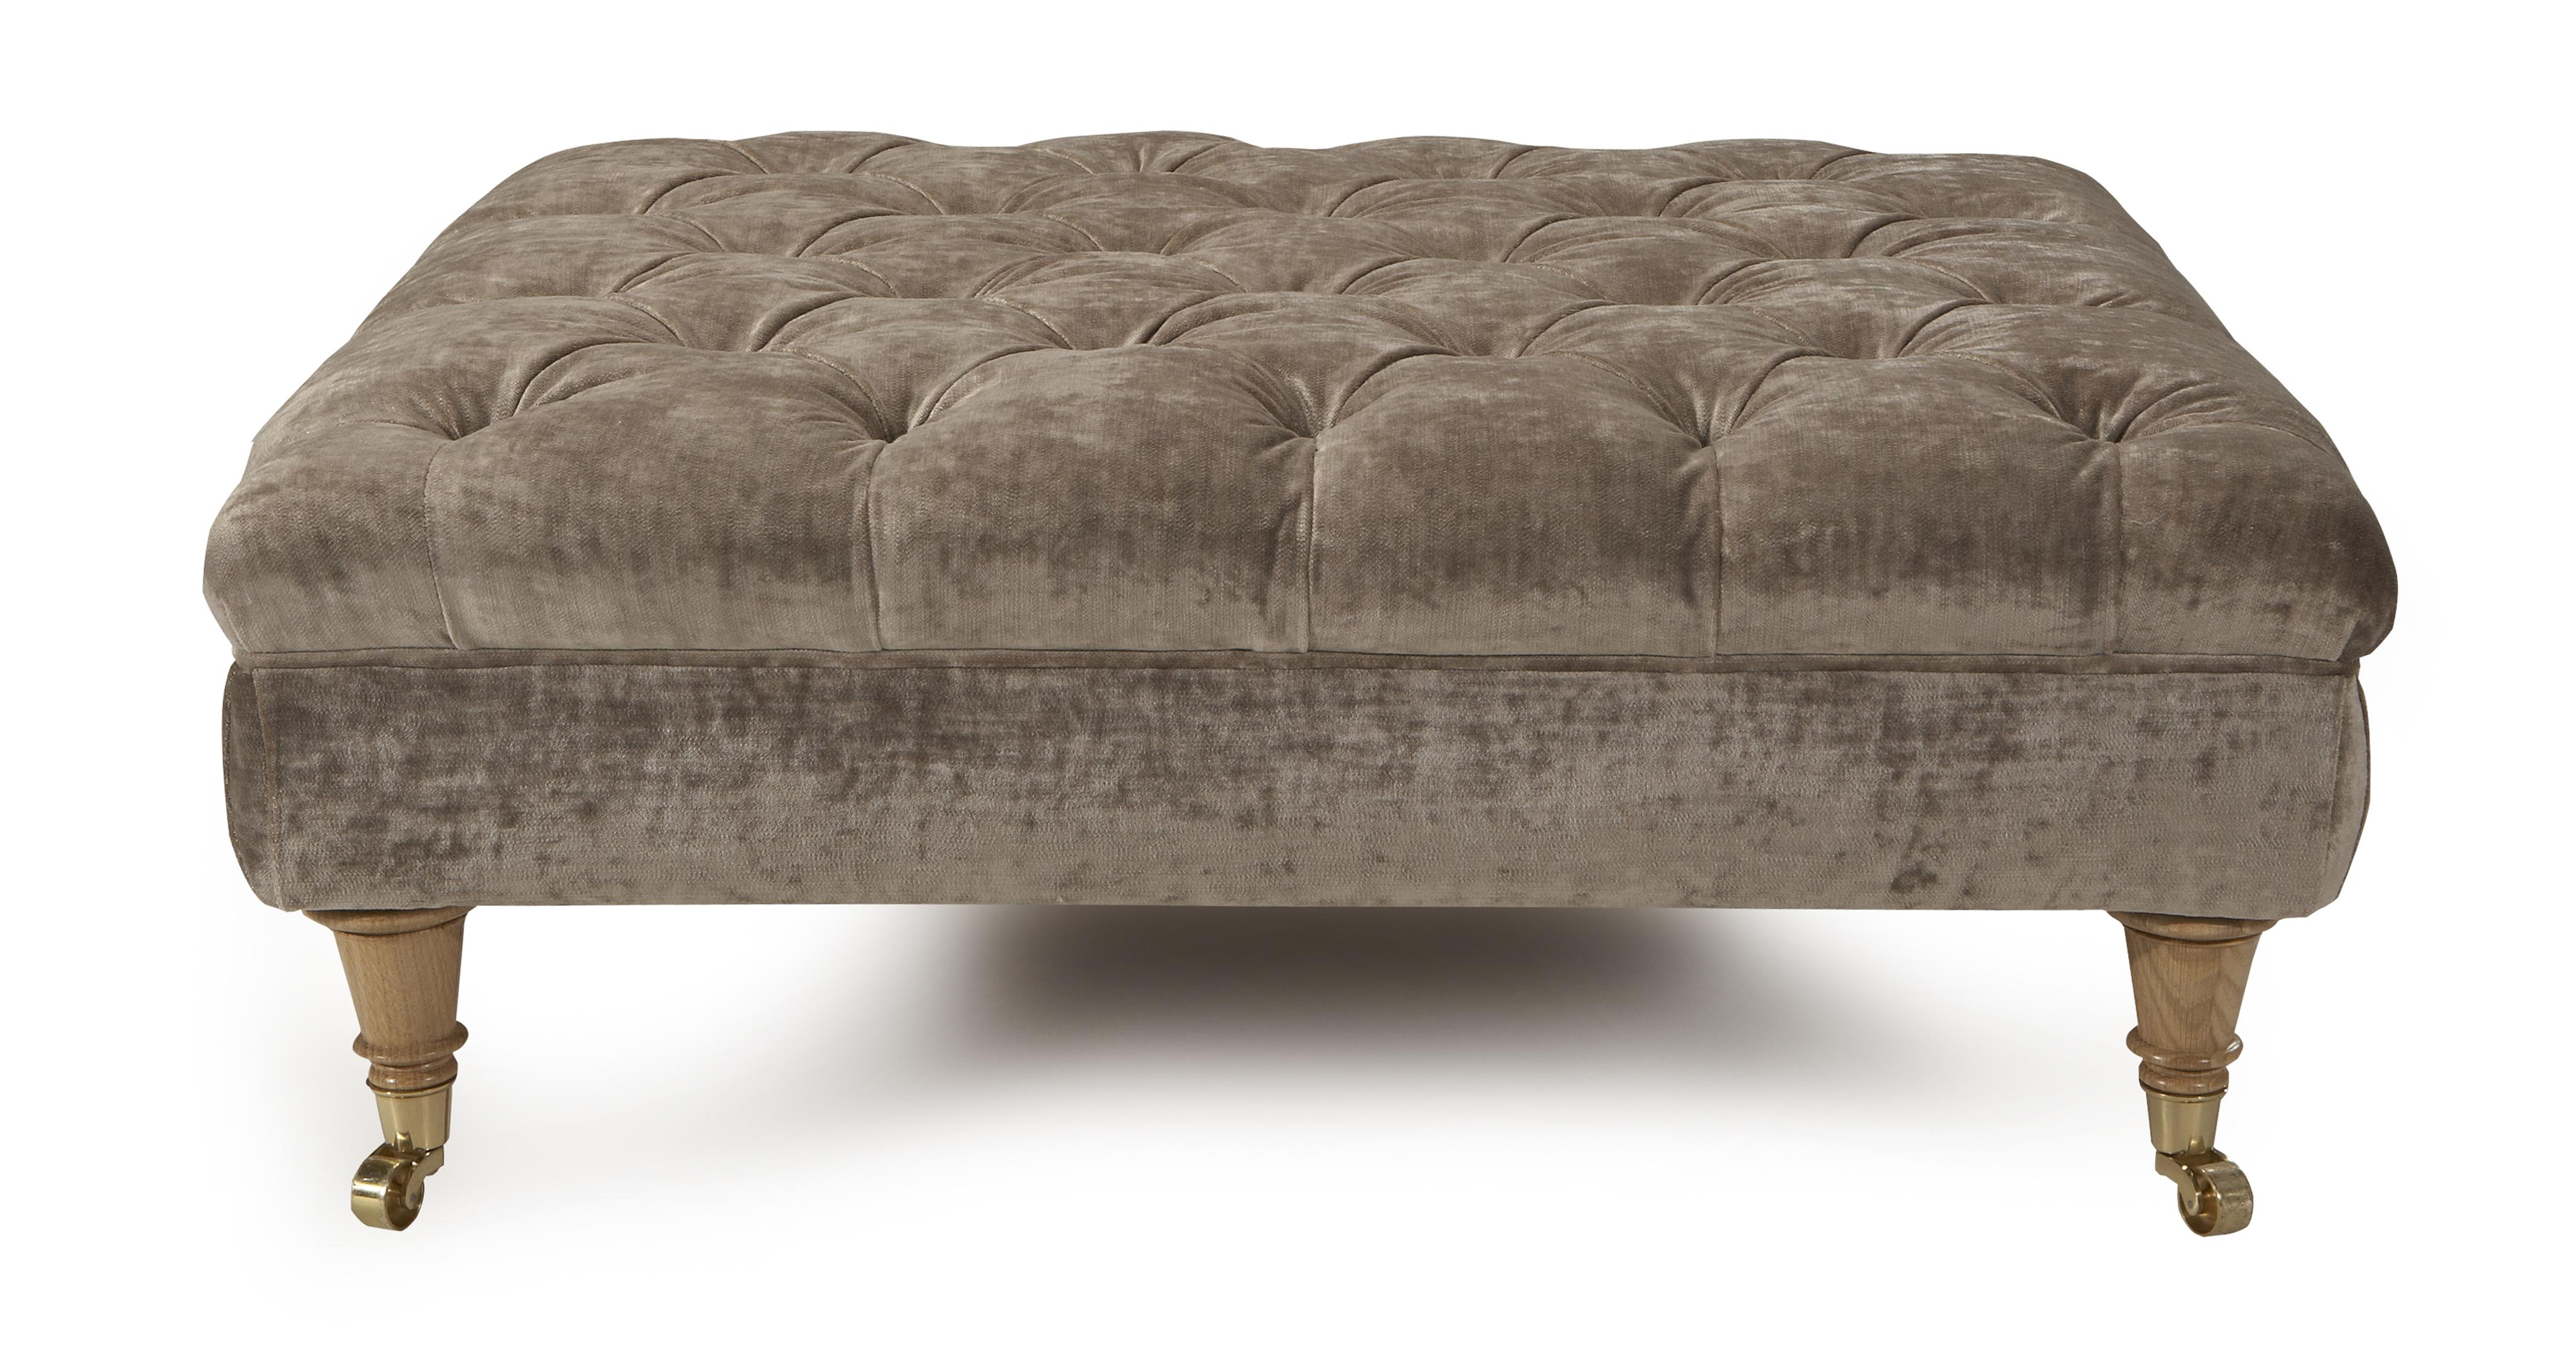 Loch Leven Large Button Footstool DFS